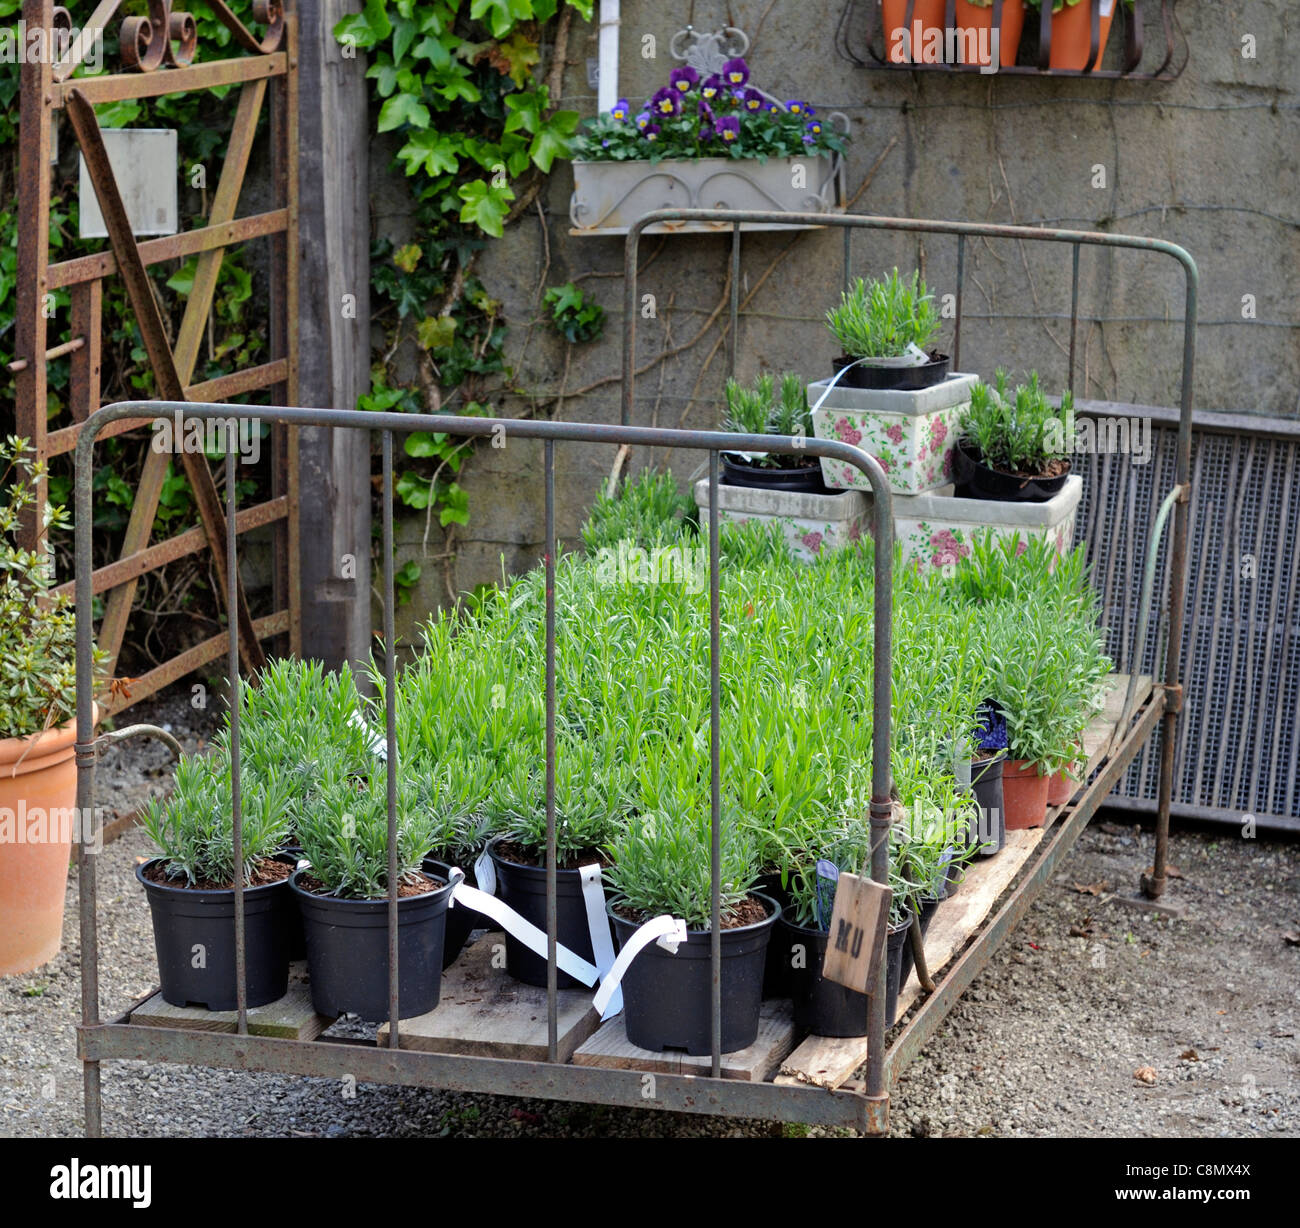 wrought iron bedstead being used as a raised flowerbed bed ironic irony humour comic garden centre recycle alternate - Stock Image